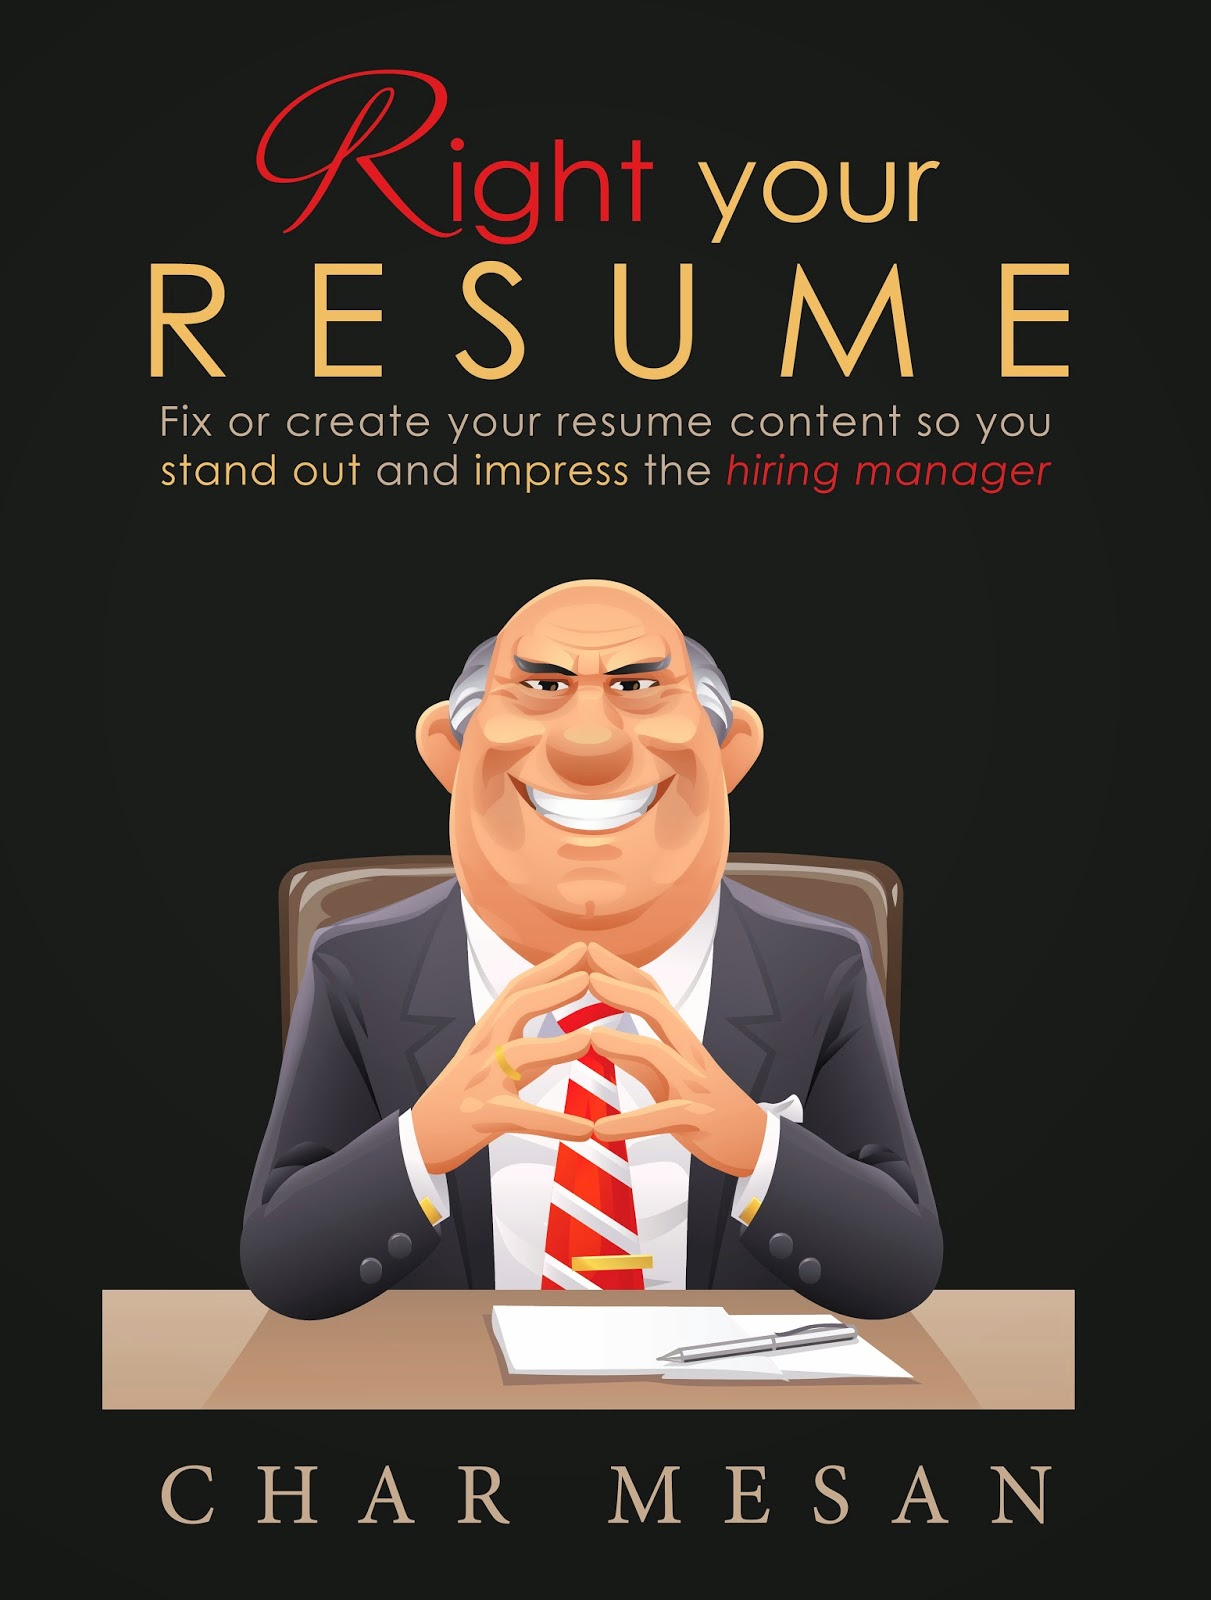 Check out Right Your Resume now